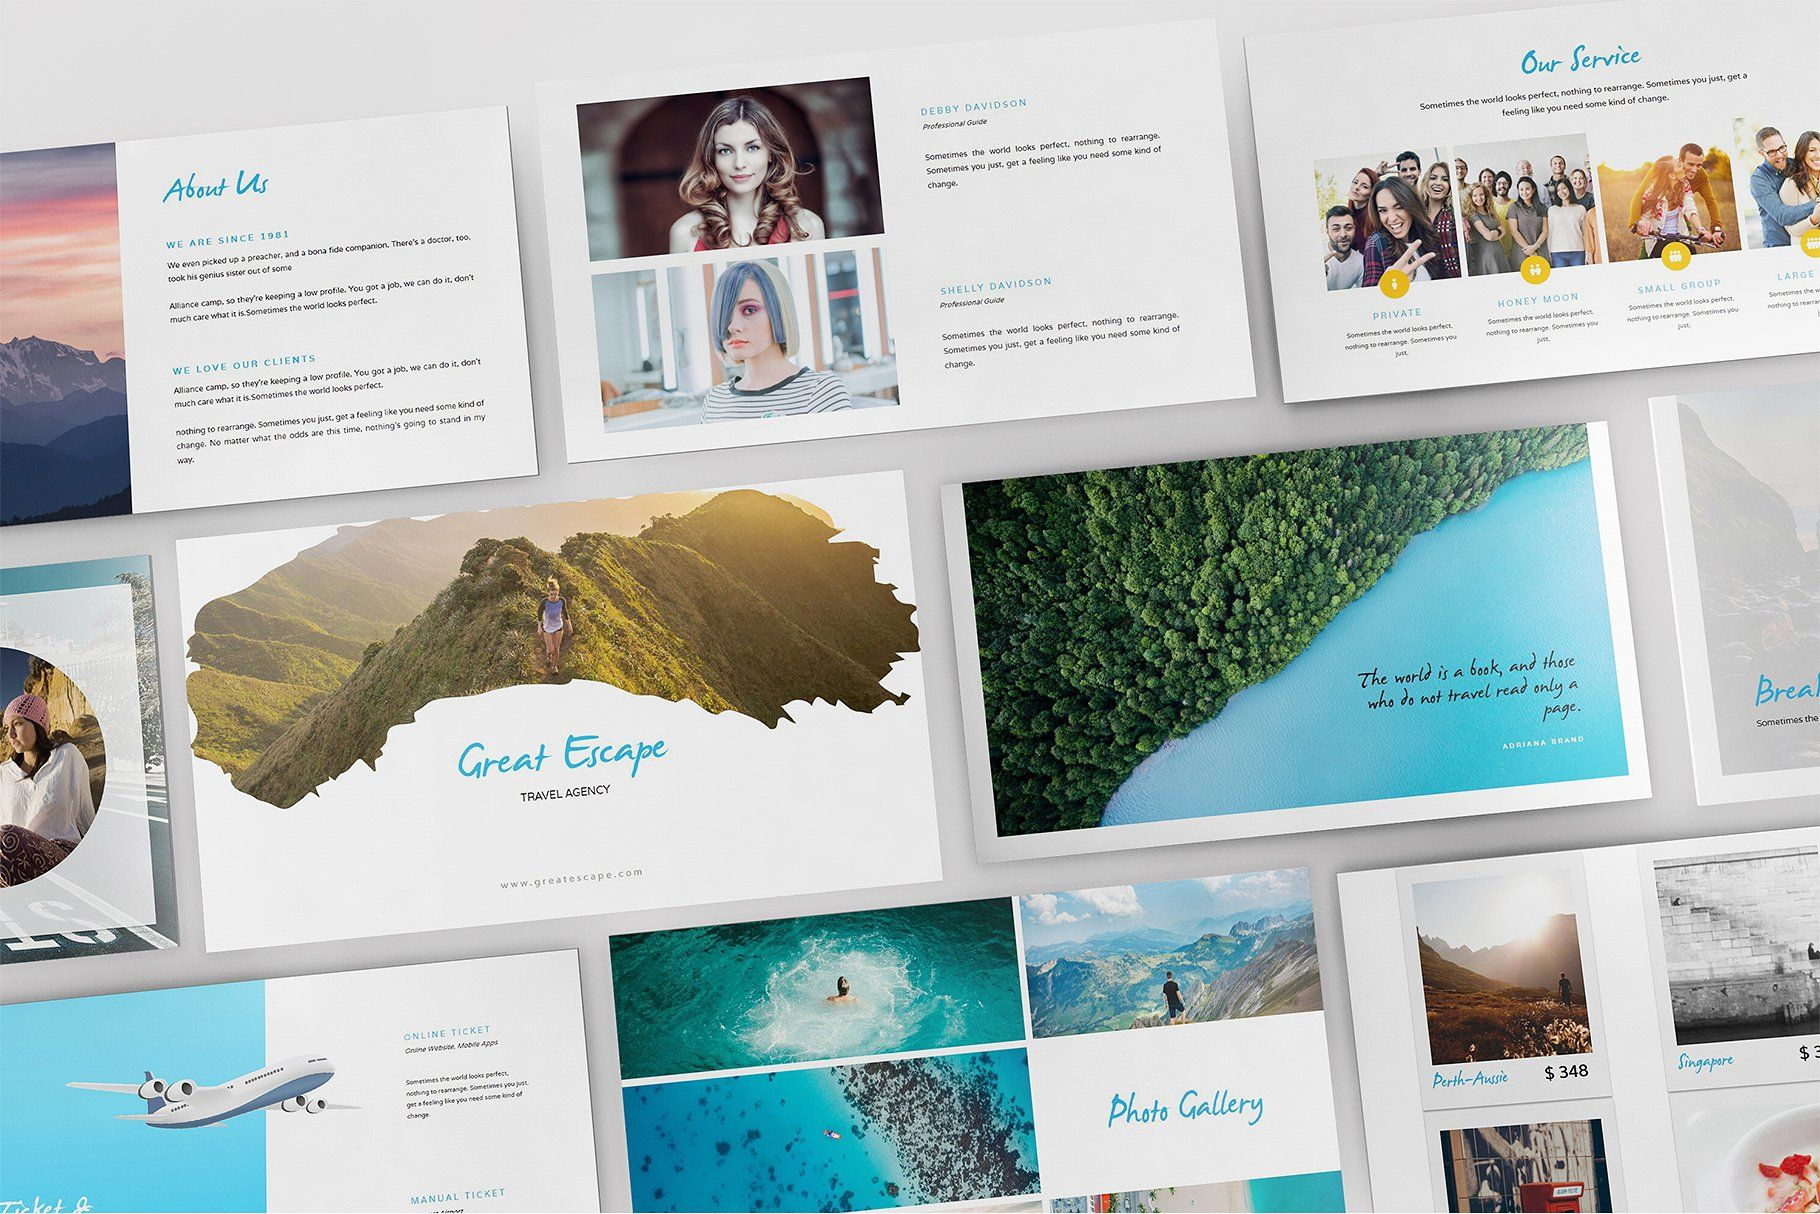 Travel Agency Keynote Template By Incools Stokie On